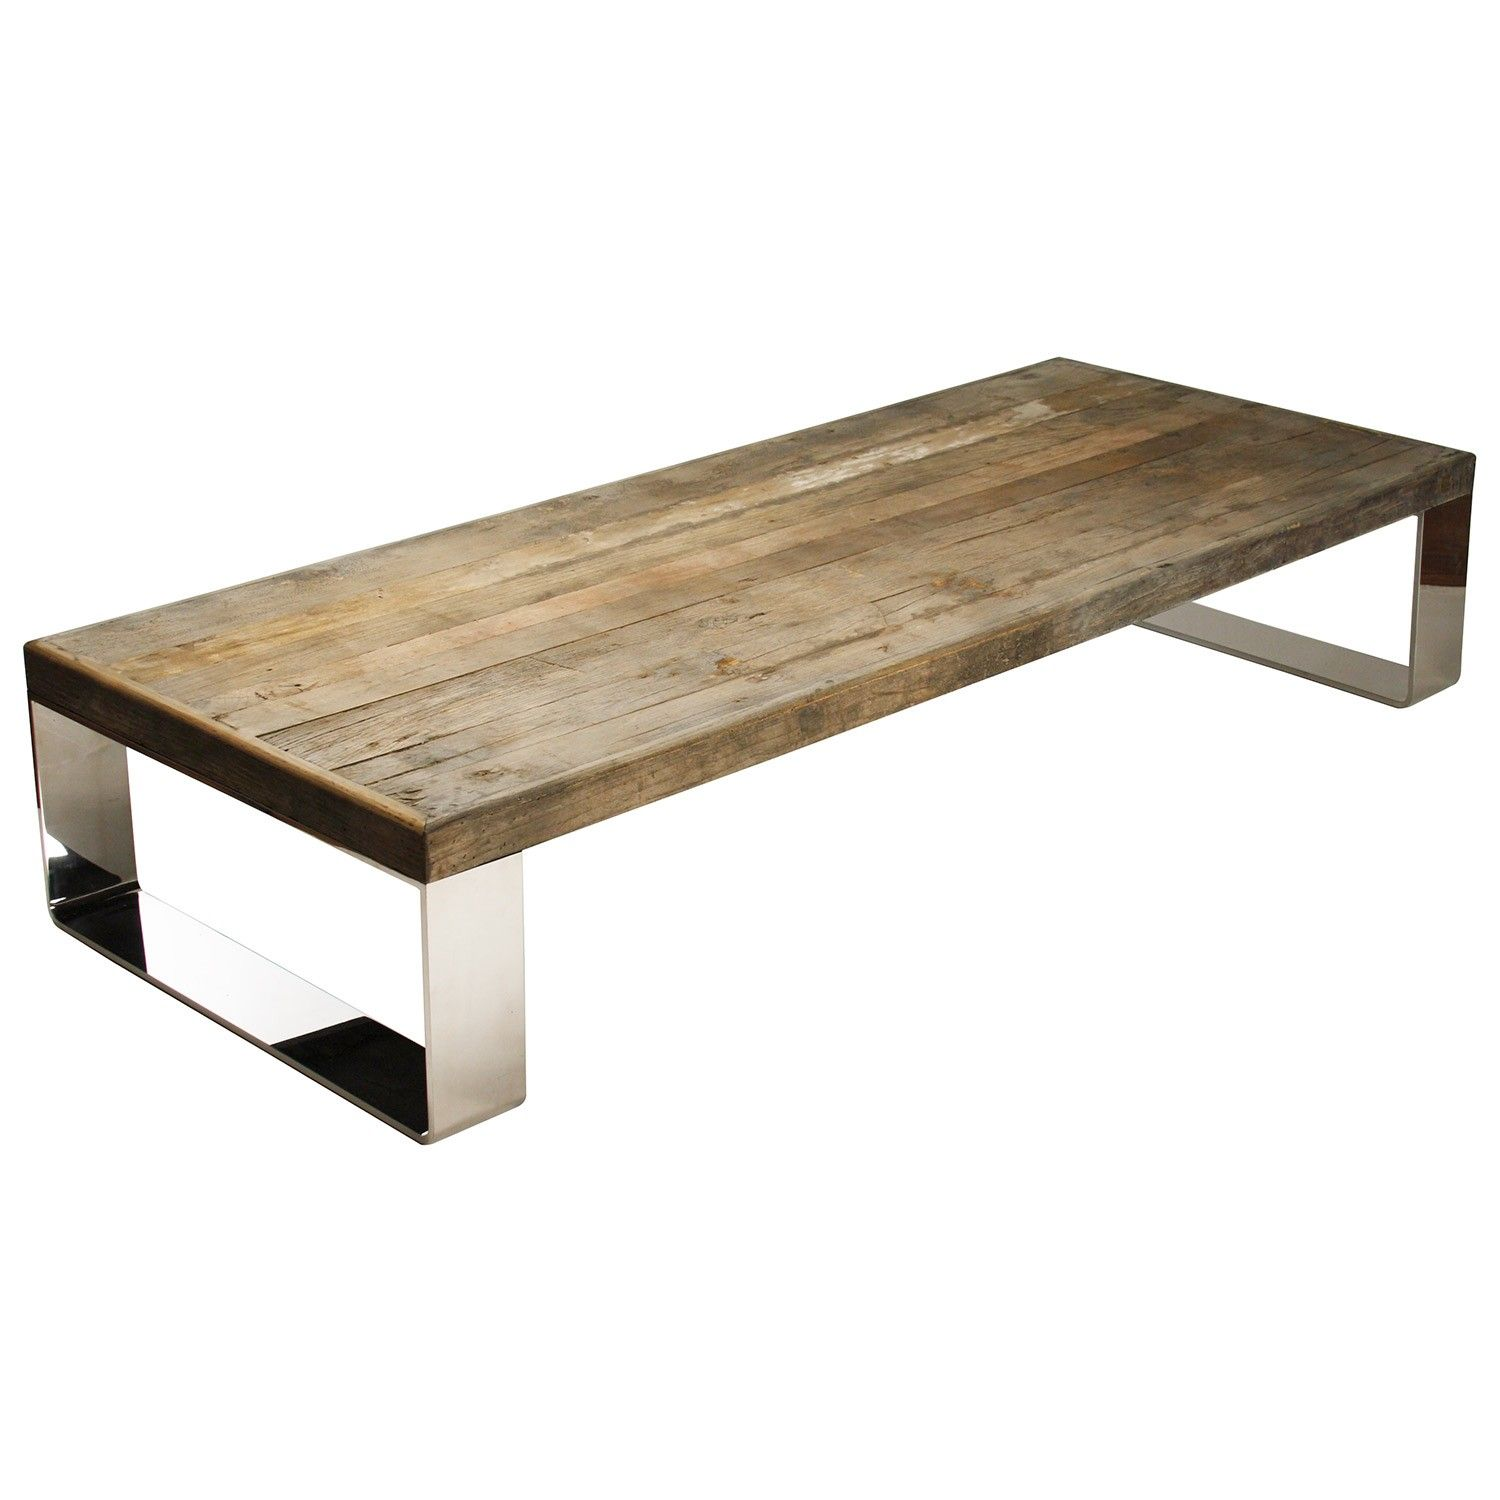 contemporary metal furniture legs. Adjustable Metal Table Legs Stylish And Modern Brown End Tables Hardwood Top Coffee With S Contemporary Furniture E